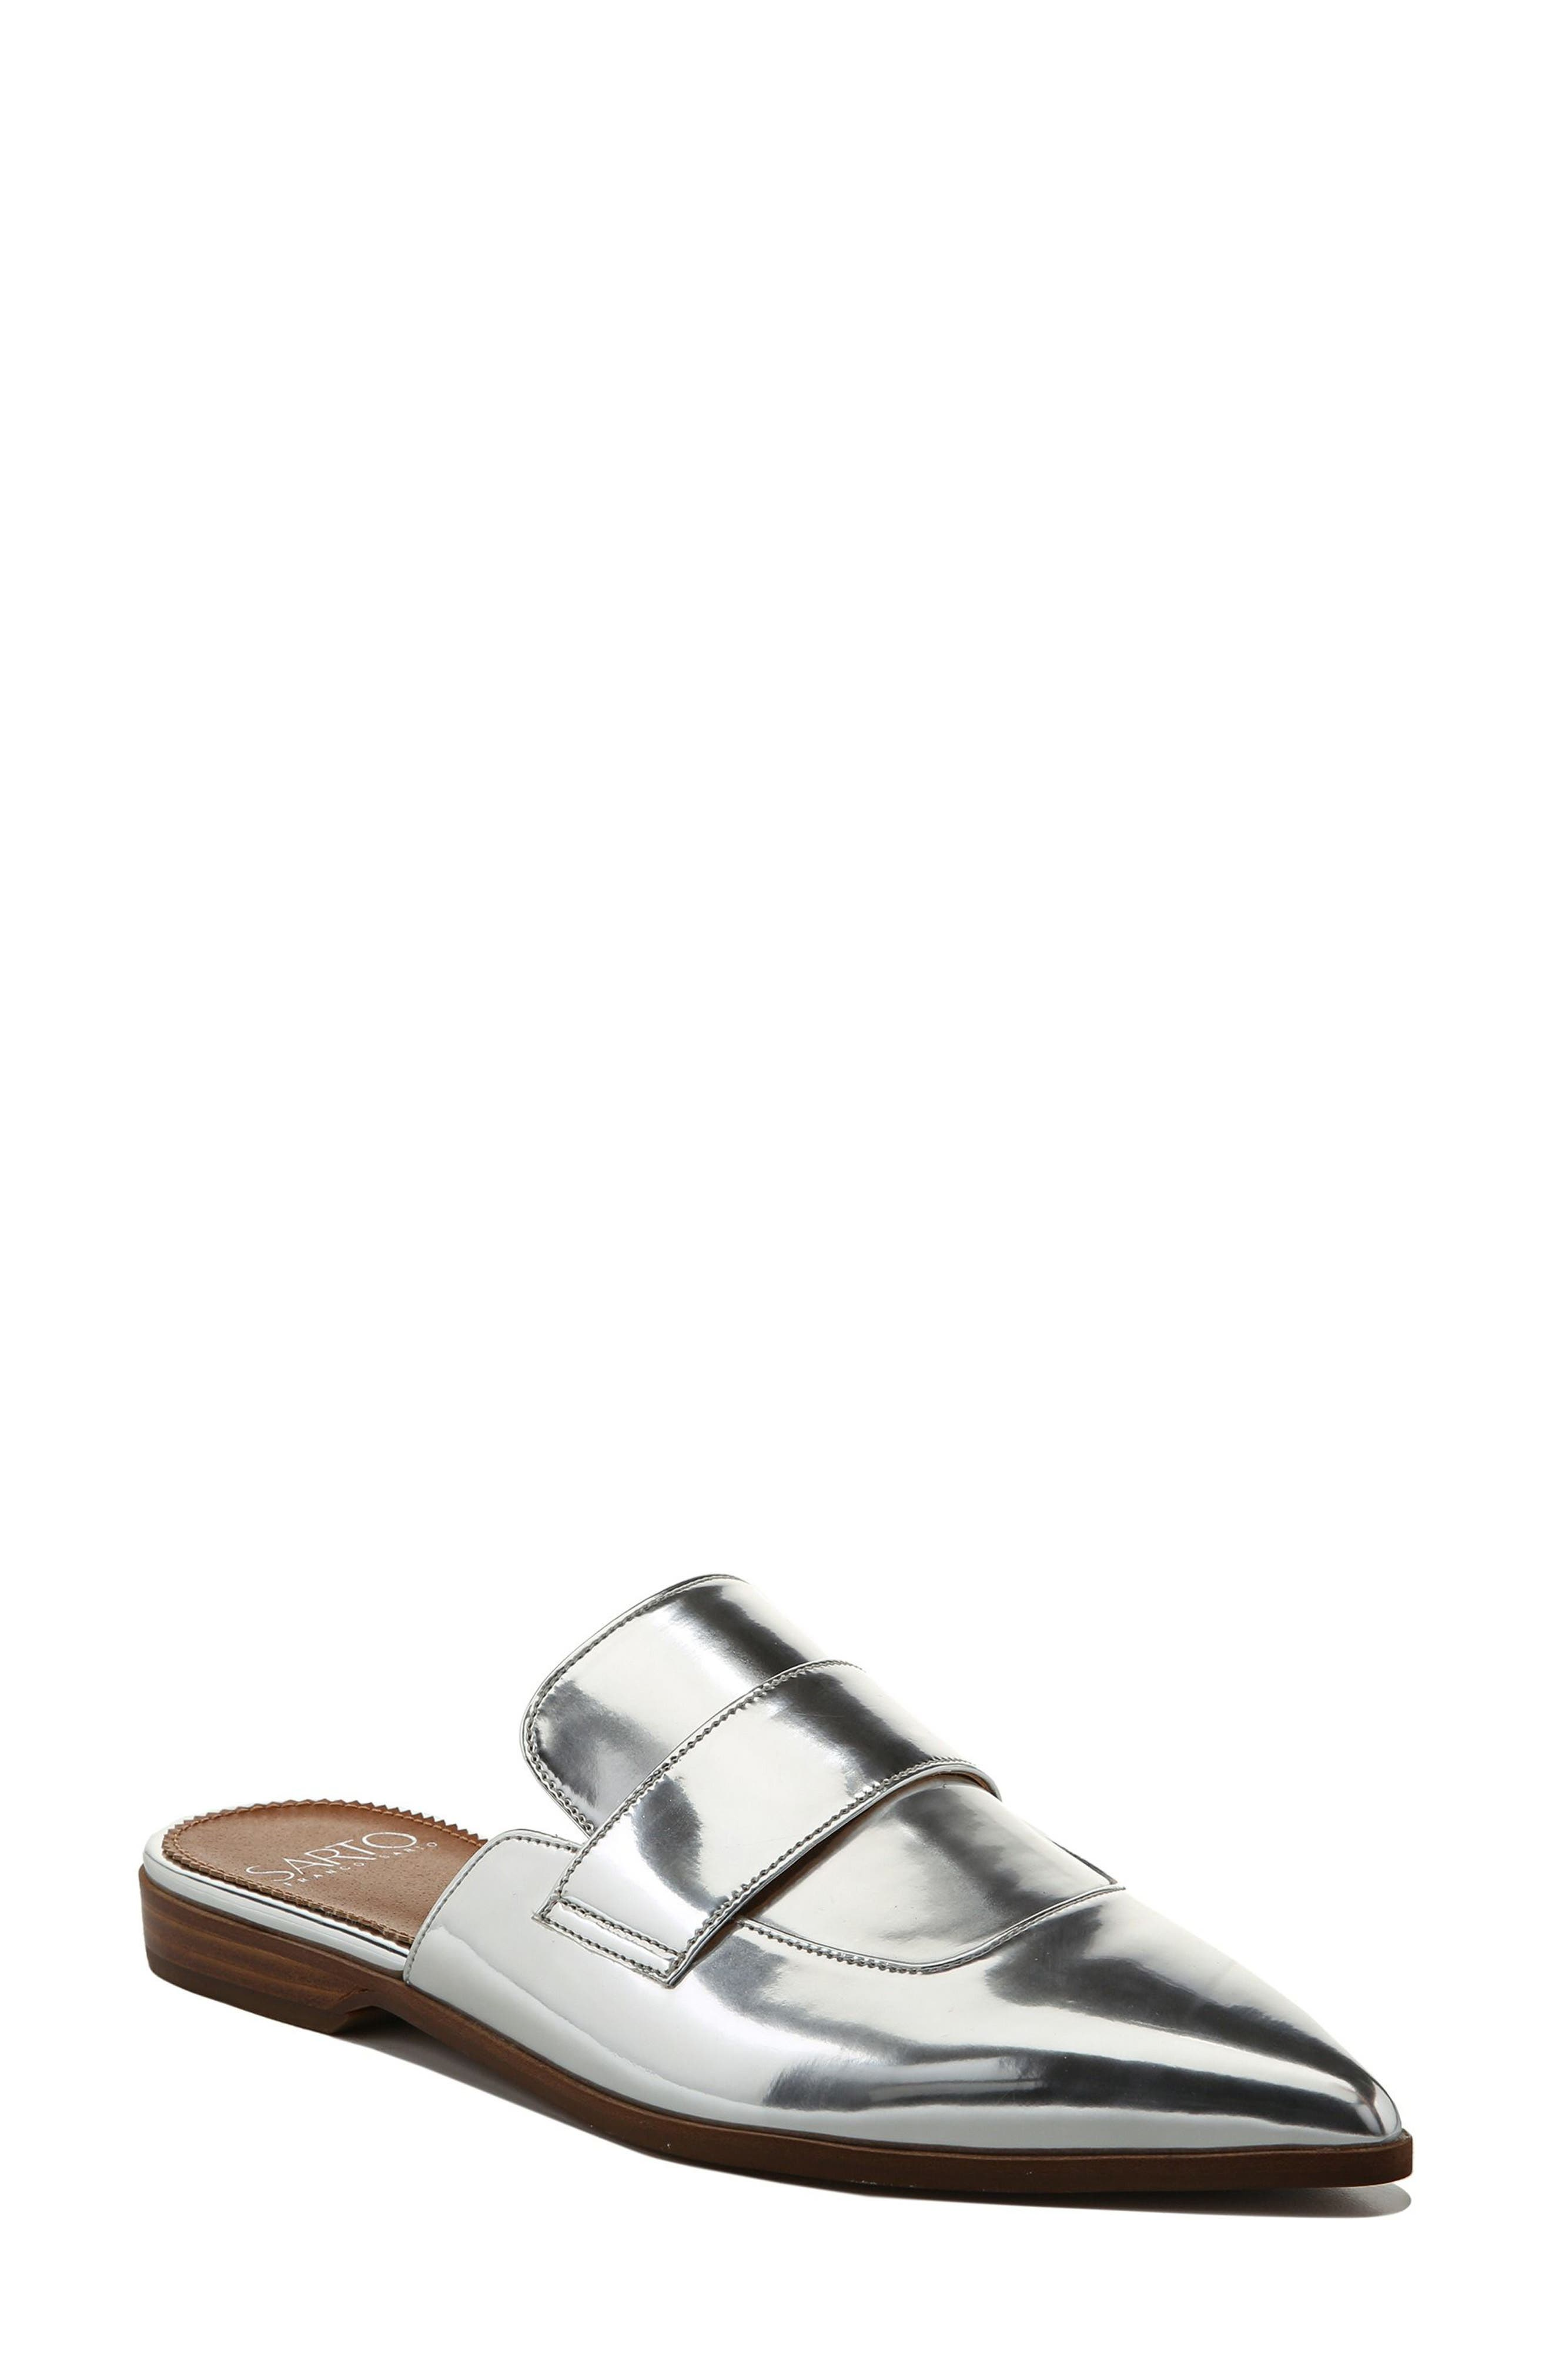 Palmer Mule,                         Main,                         color, Silver Leather